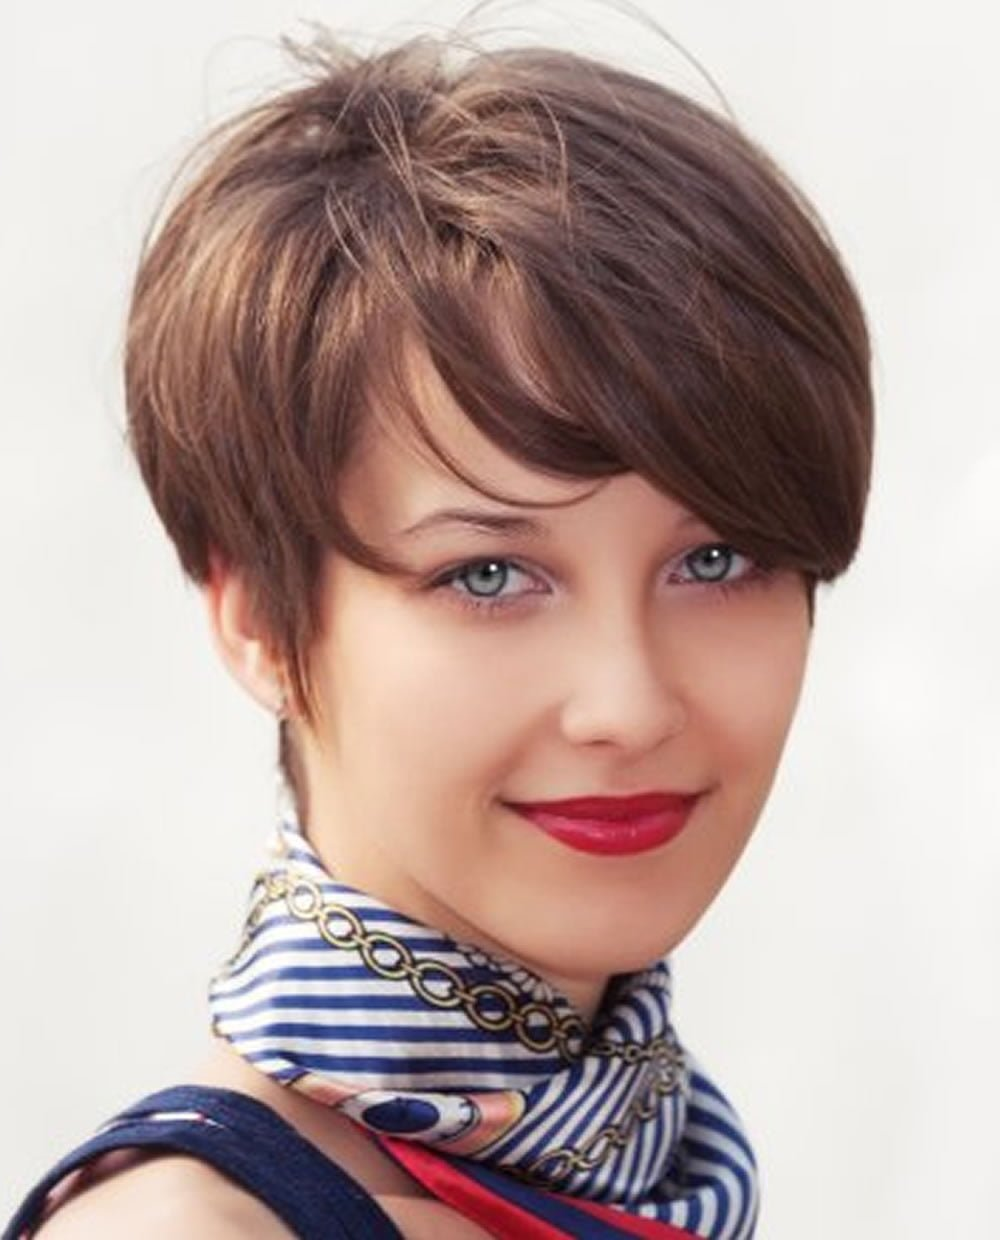 Pixie cut 2019 - Short haircut inspirations you absolutely need to try - Page 4 - HAIRSTYLES